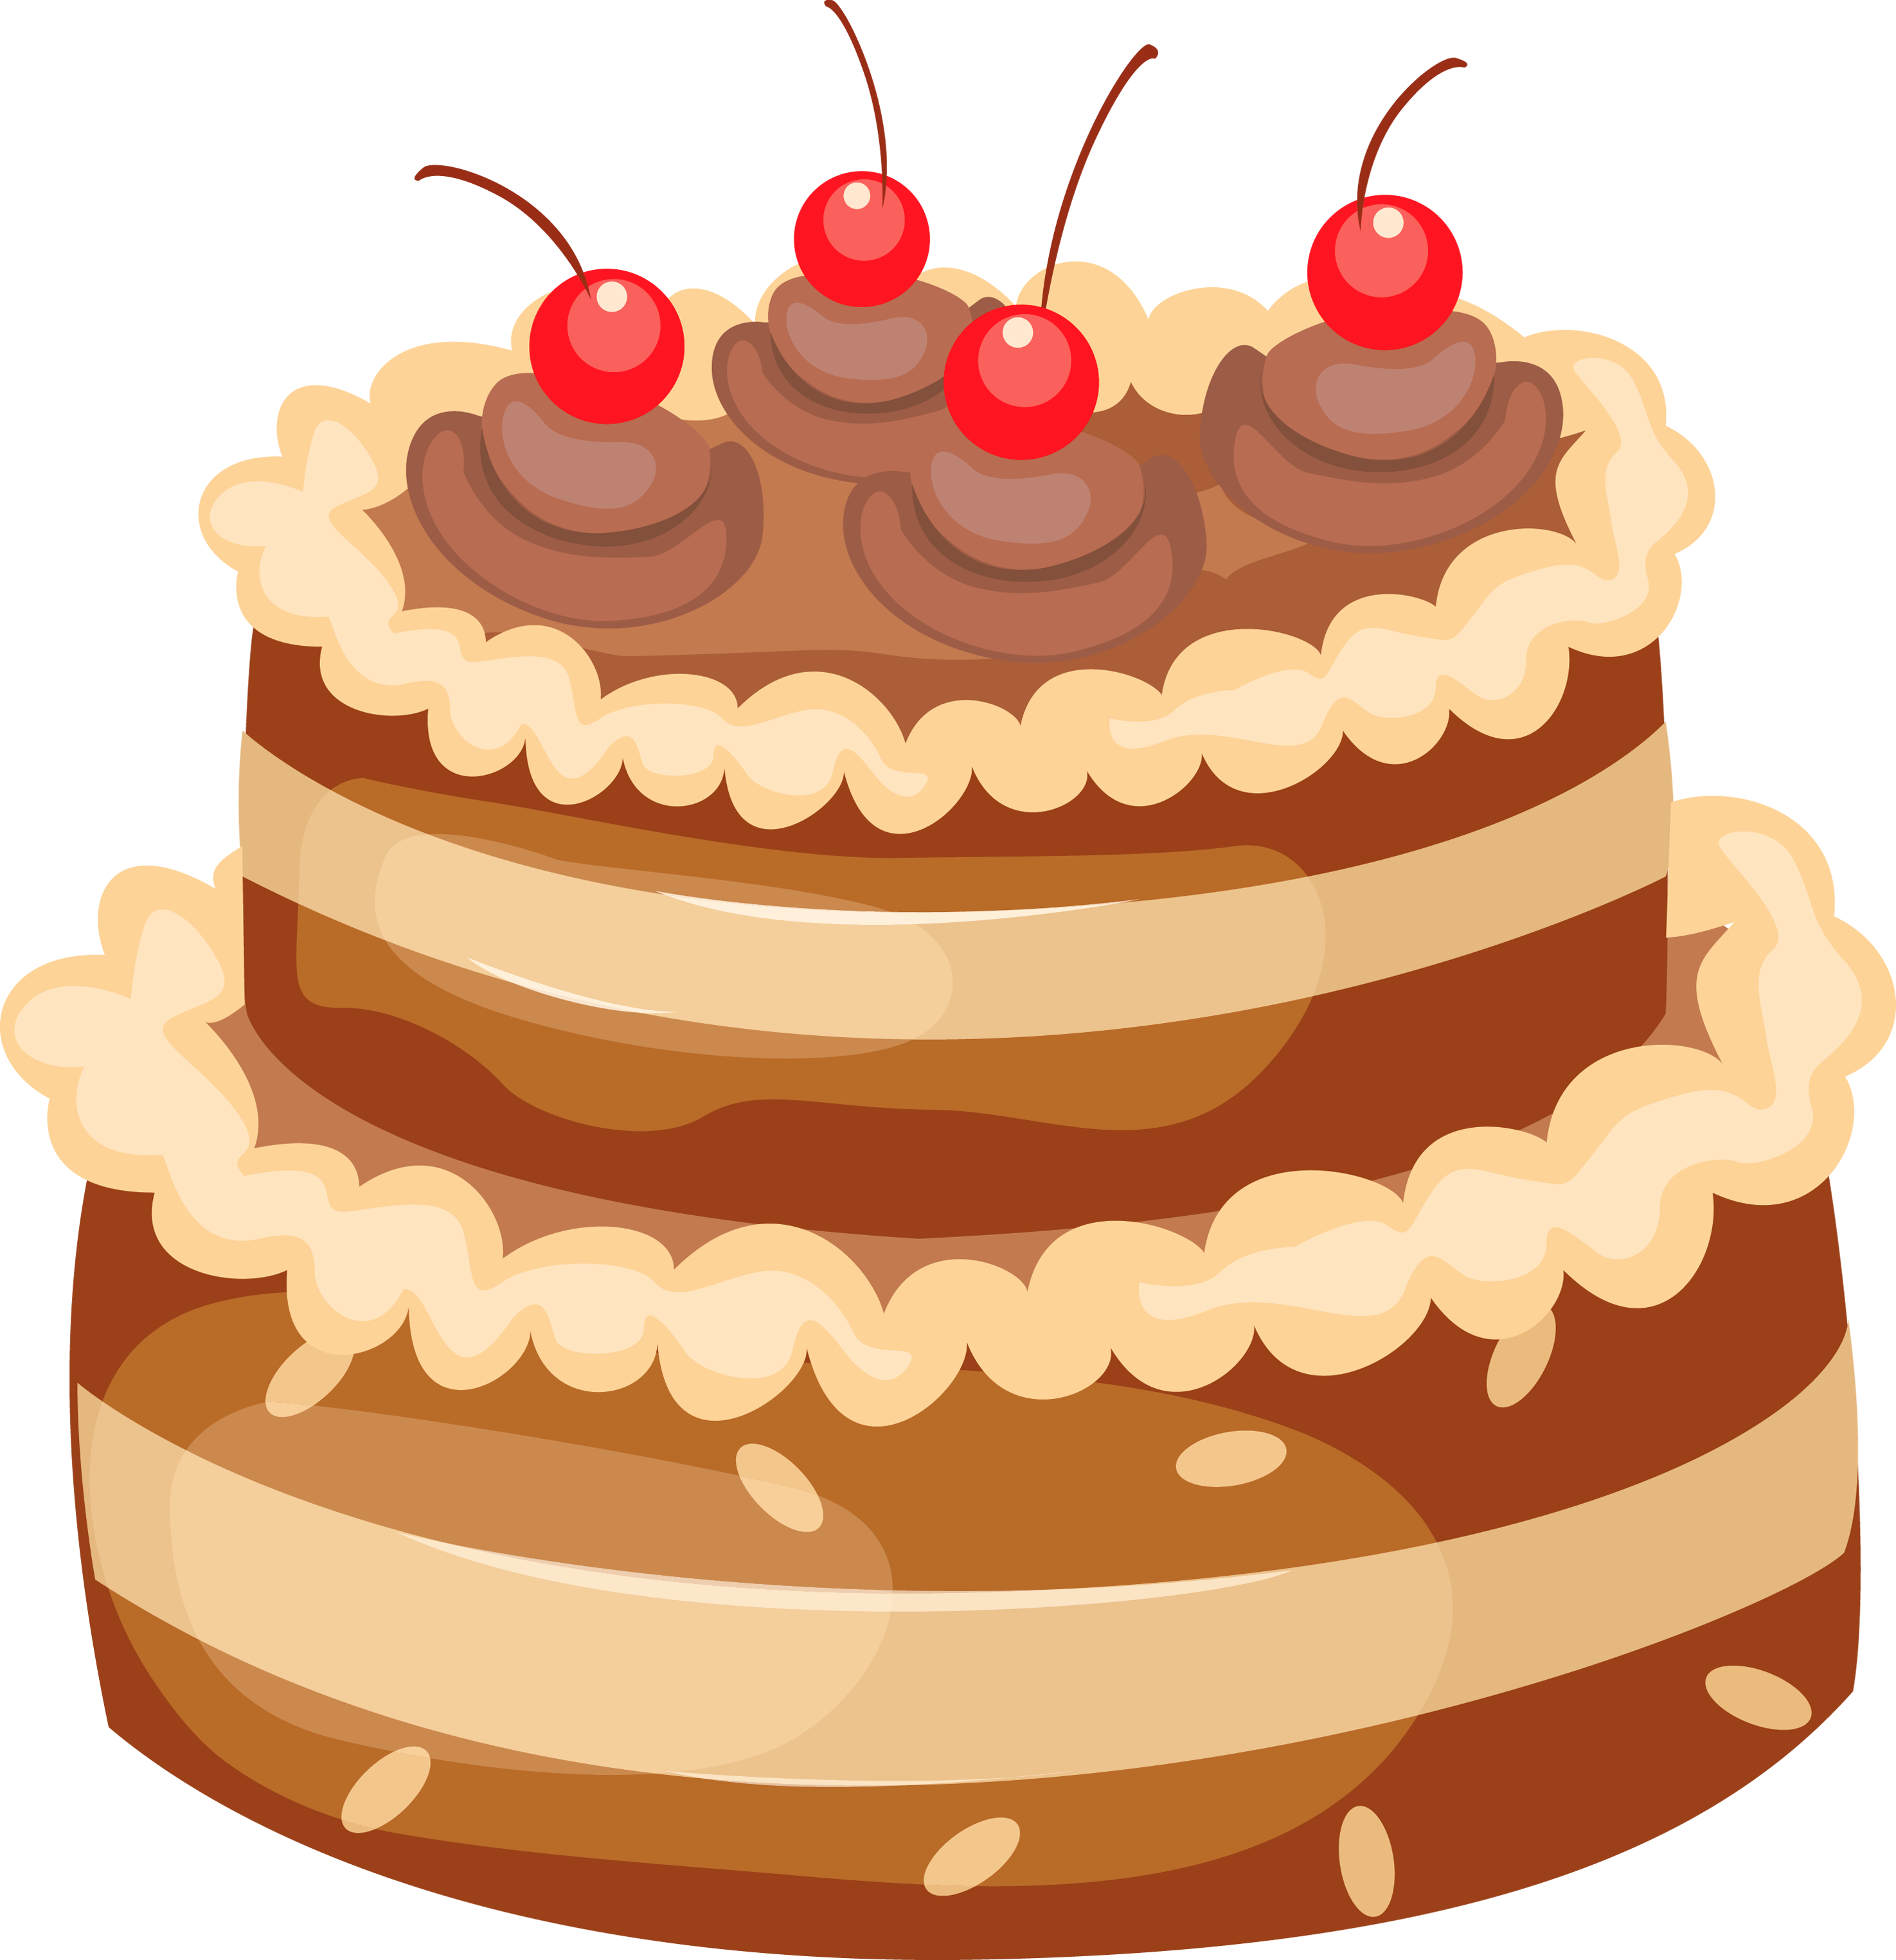 Cake Clip Art Pictures : Clip Art Cake - ClipArt Best